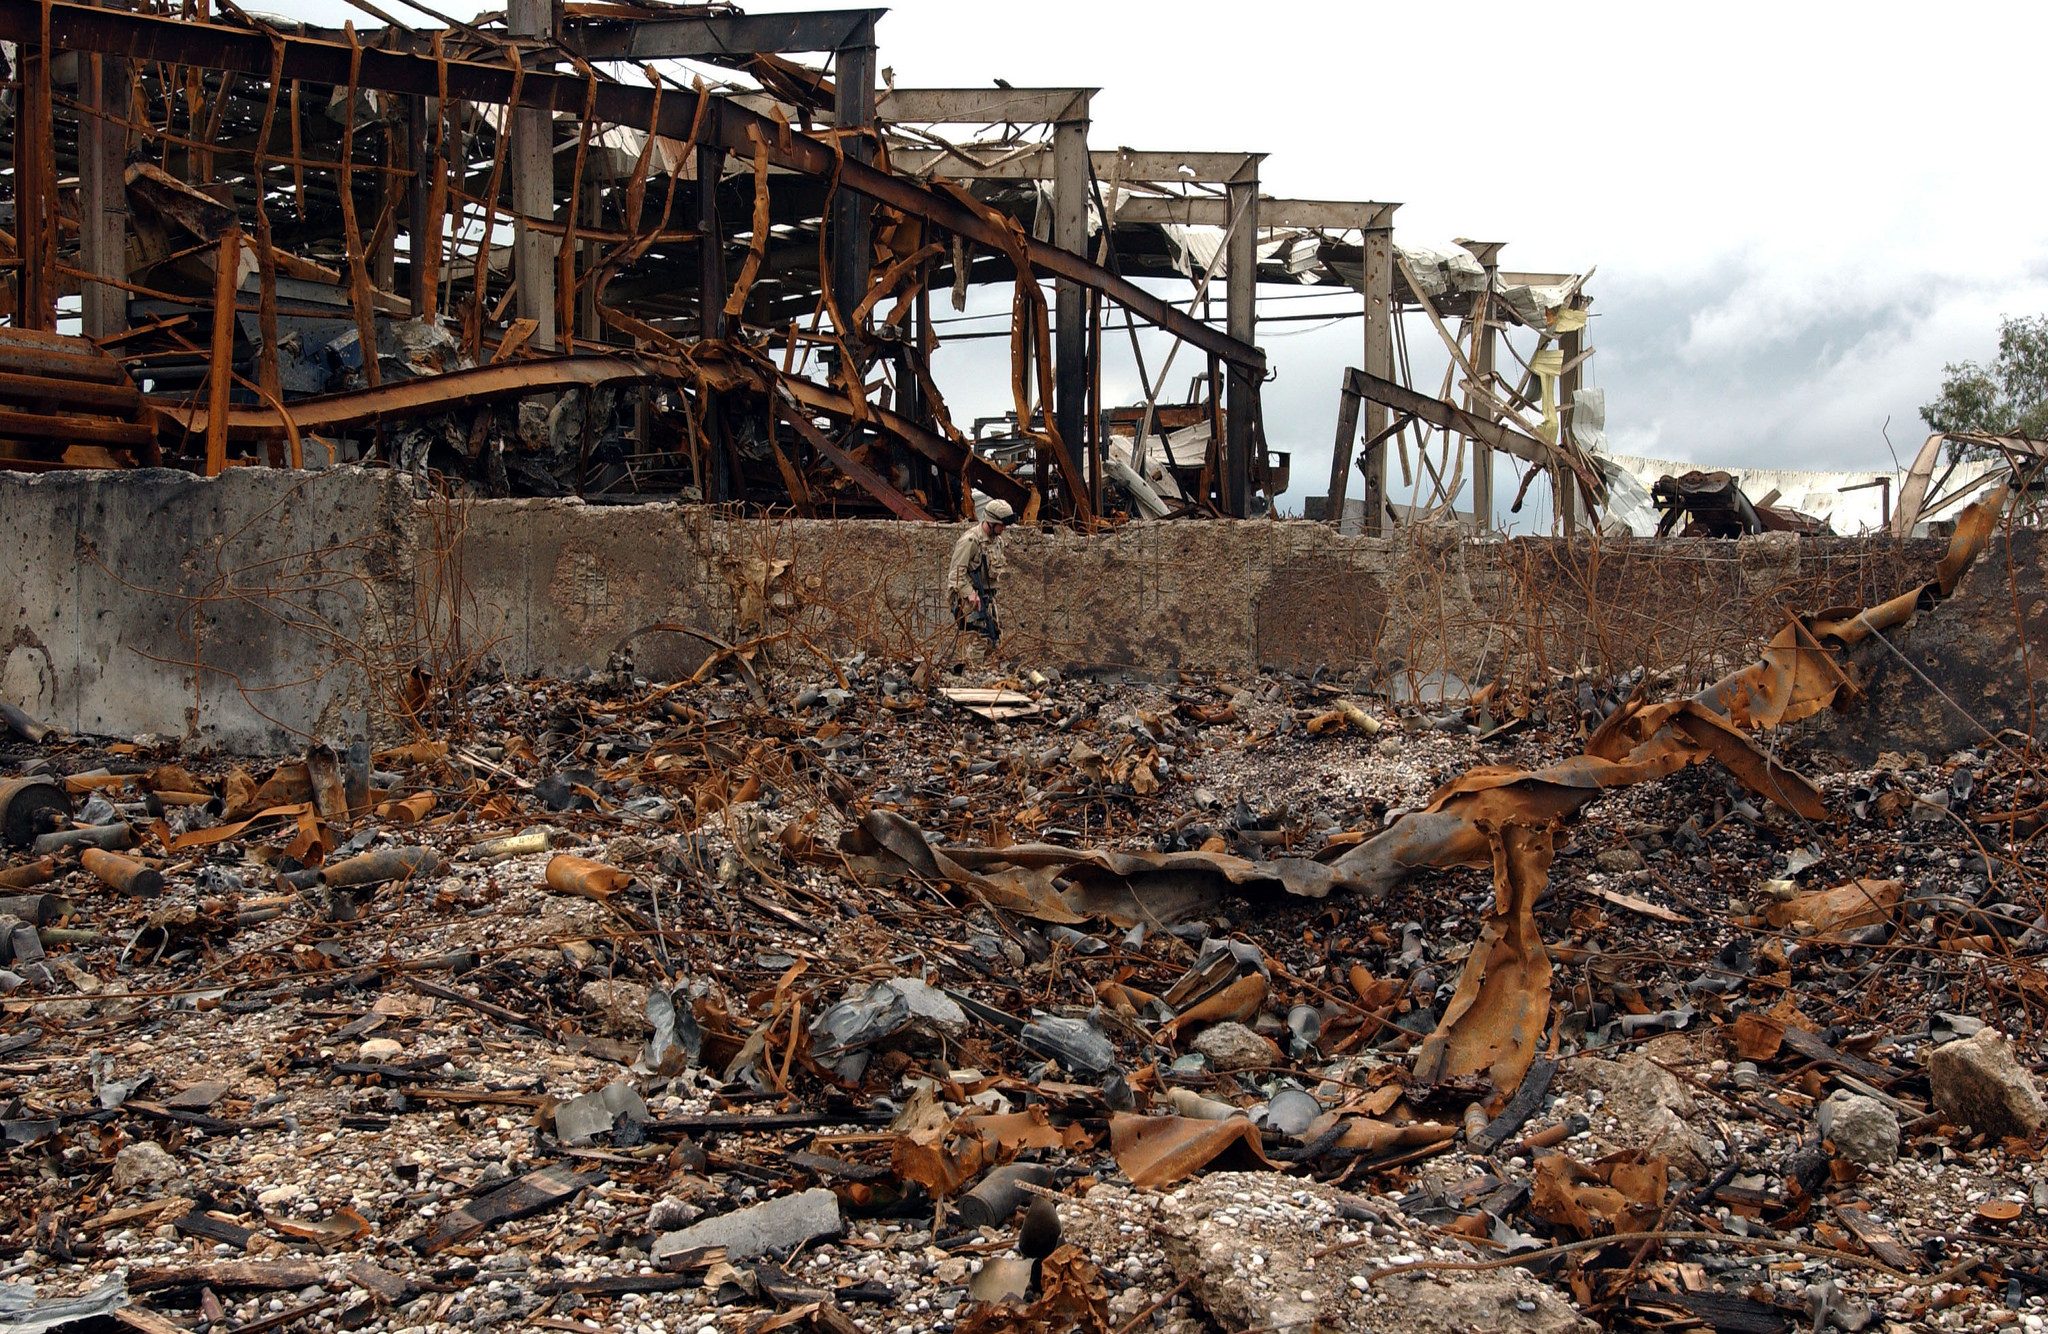 Is This What 'Liberation' Looks Like? U.S. Airstrikes Have Devastated Mosul.